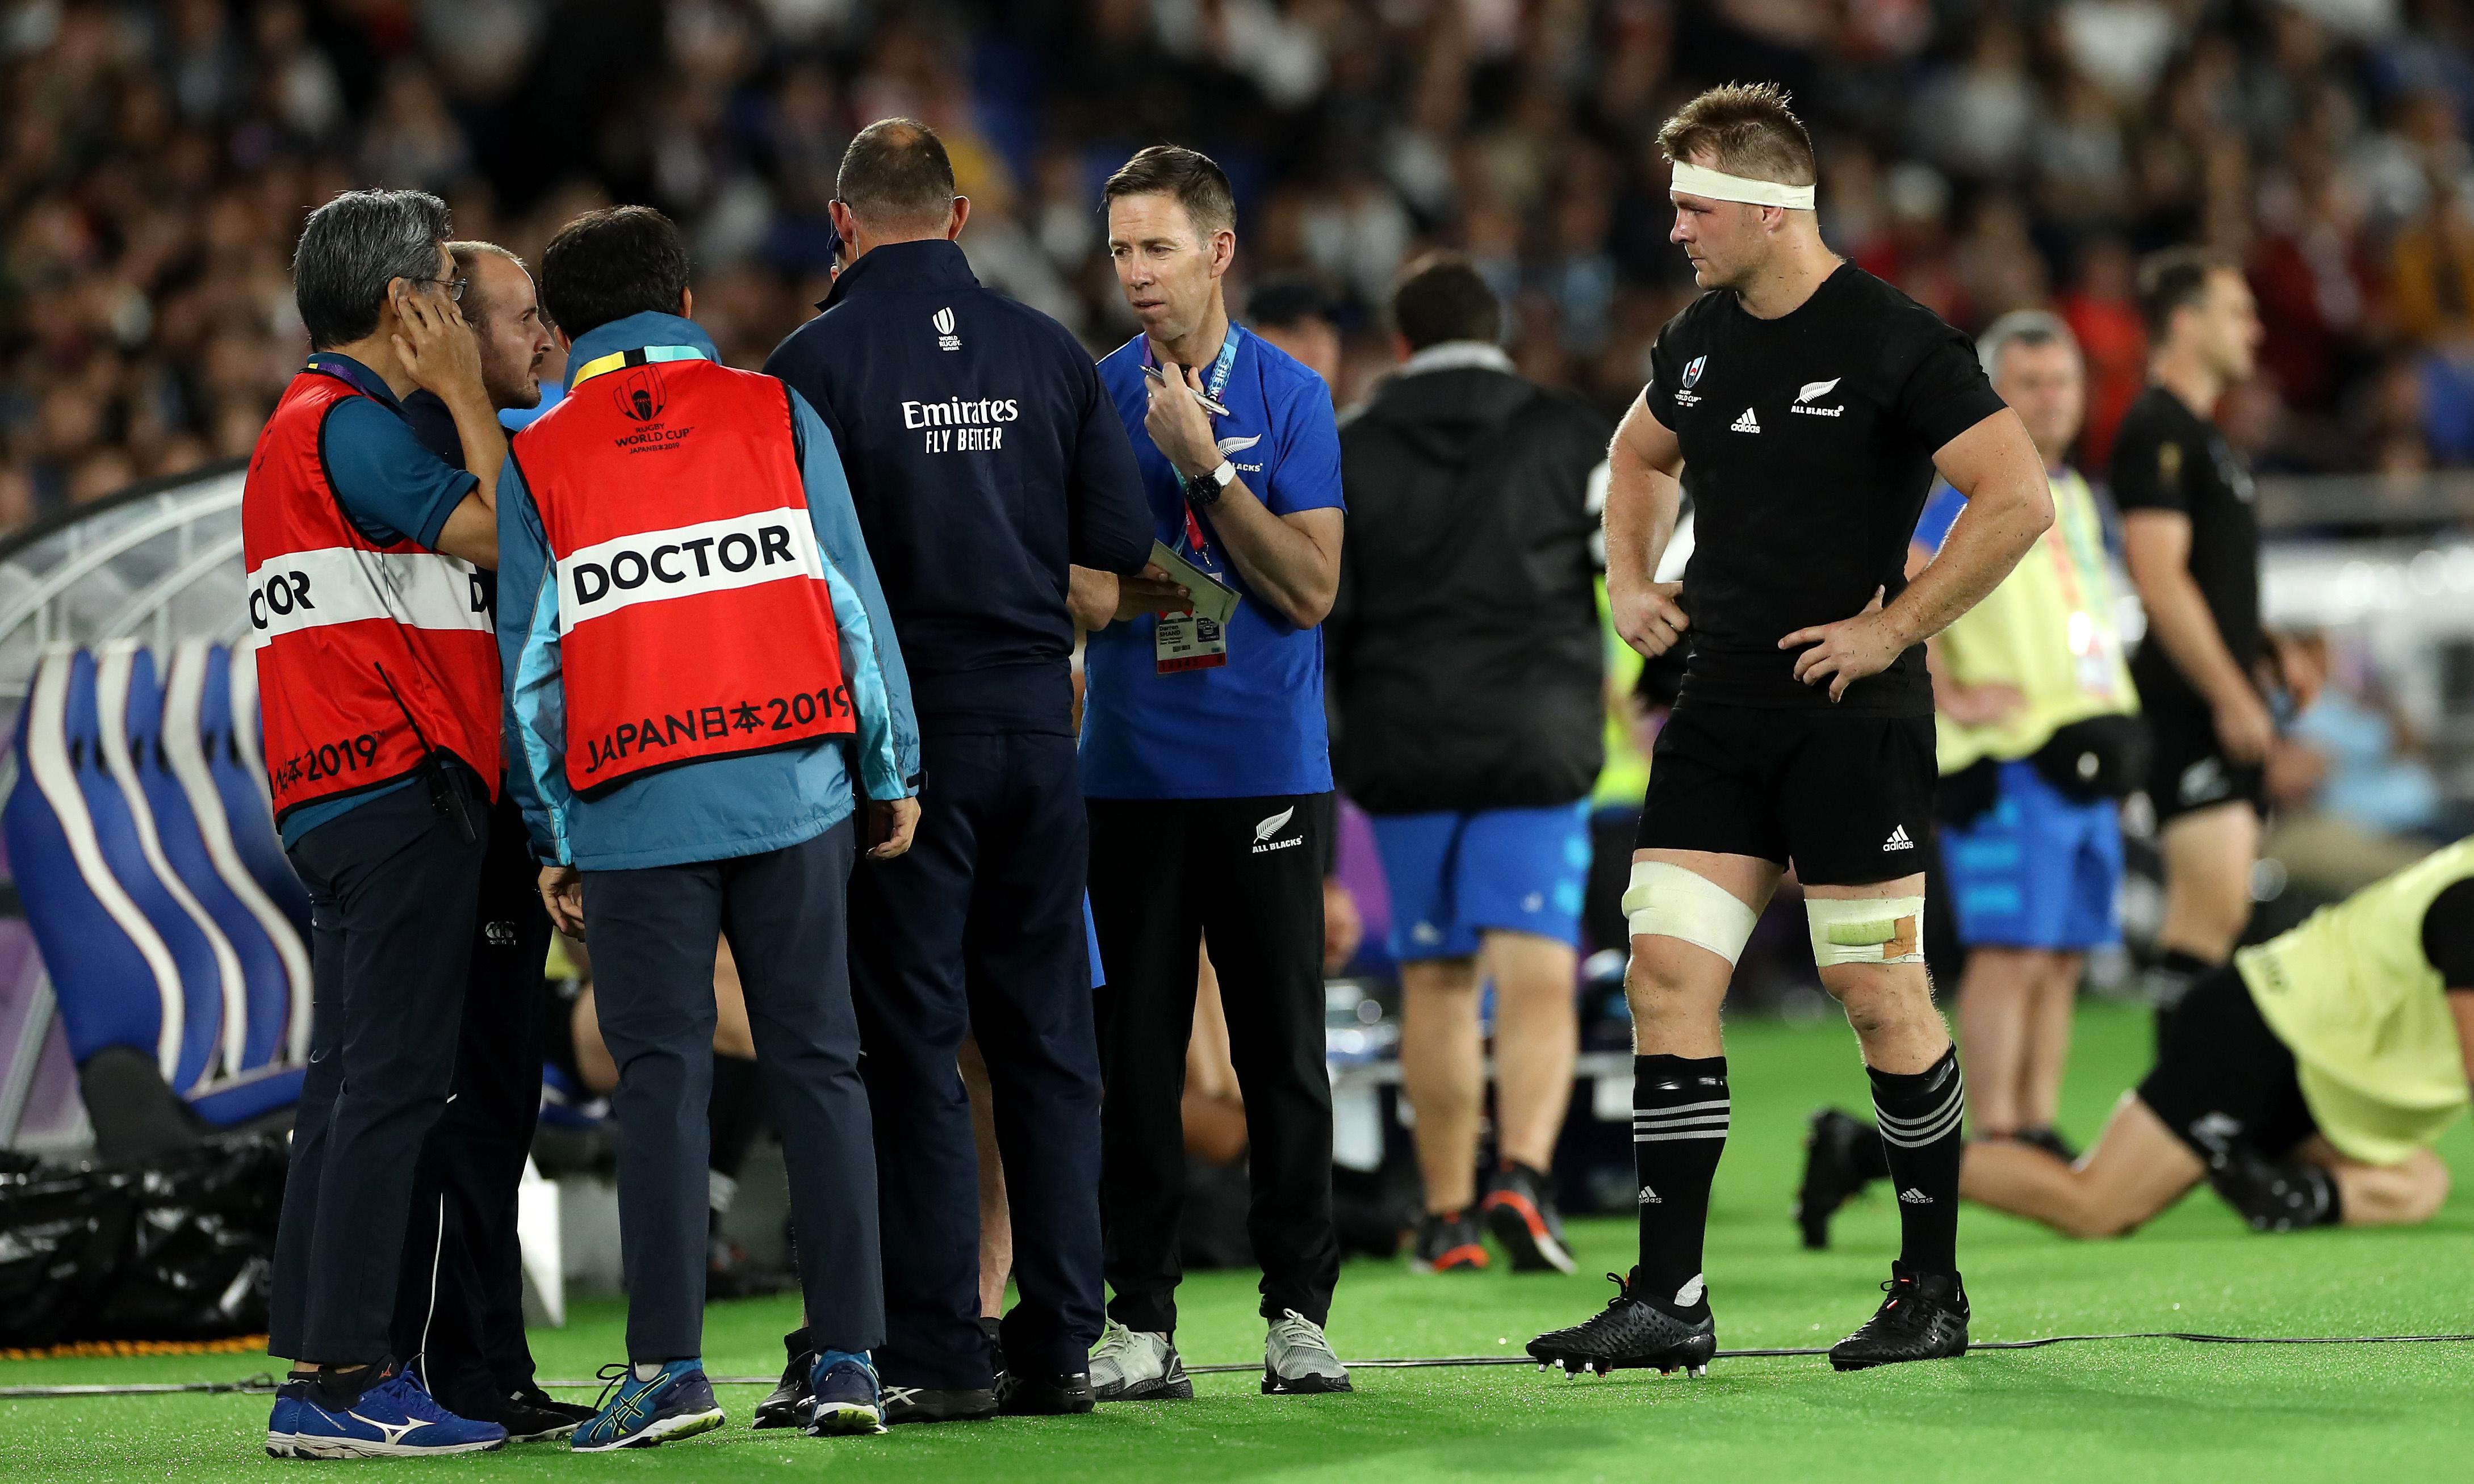 Steve Hansen says World Rugby will alter HIA process after Cane debacle